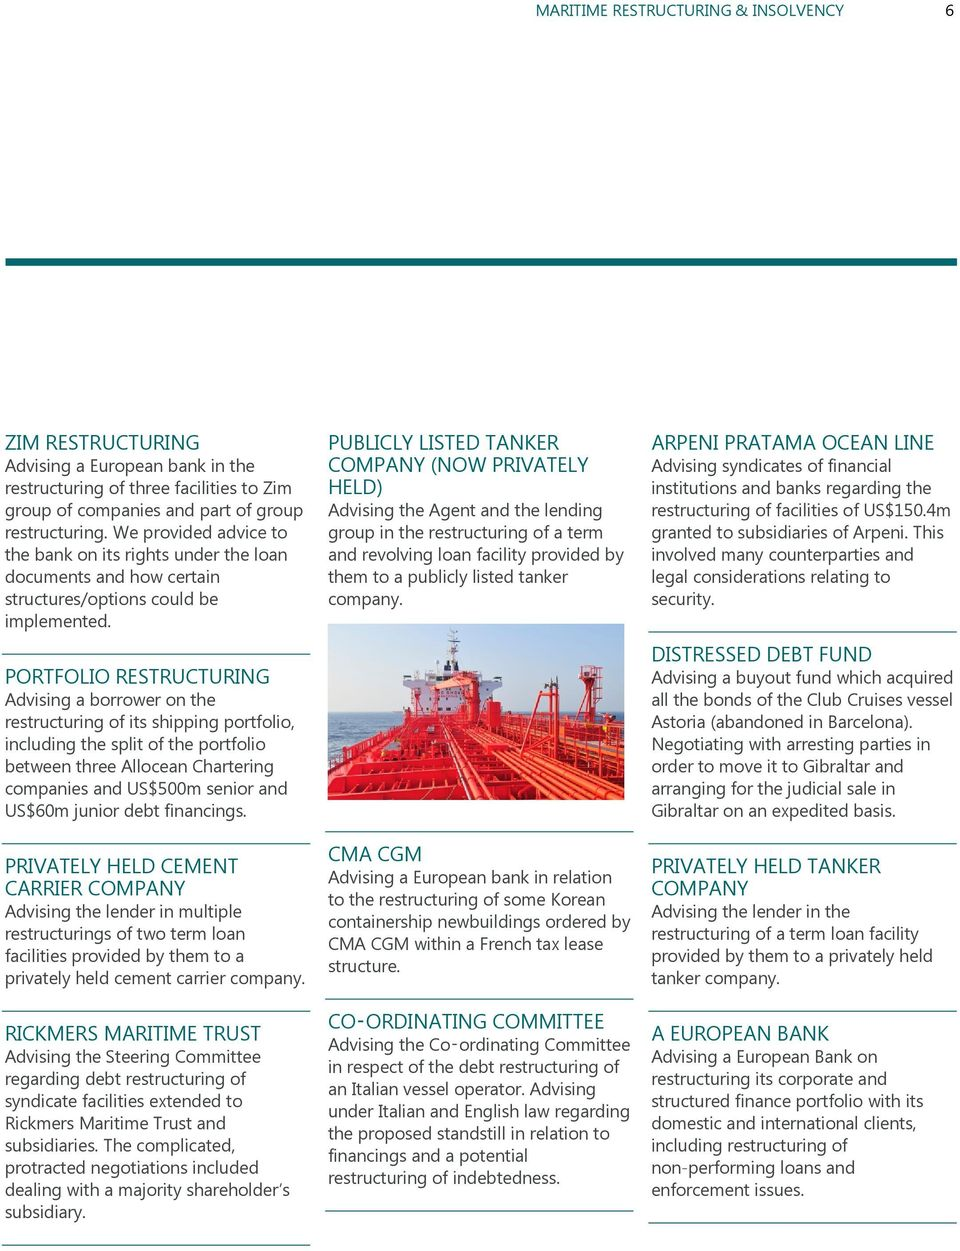 PORTFOLIO RESTRUCTURING Advising a borrower on the restructuring of its shipping portfolio, including the split of the portfolio between three Allocean Chartering companies and US$500m senior and